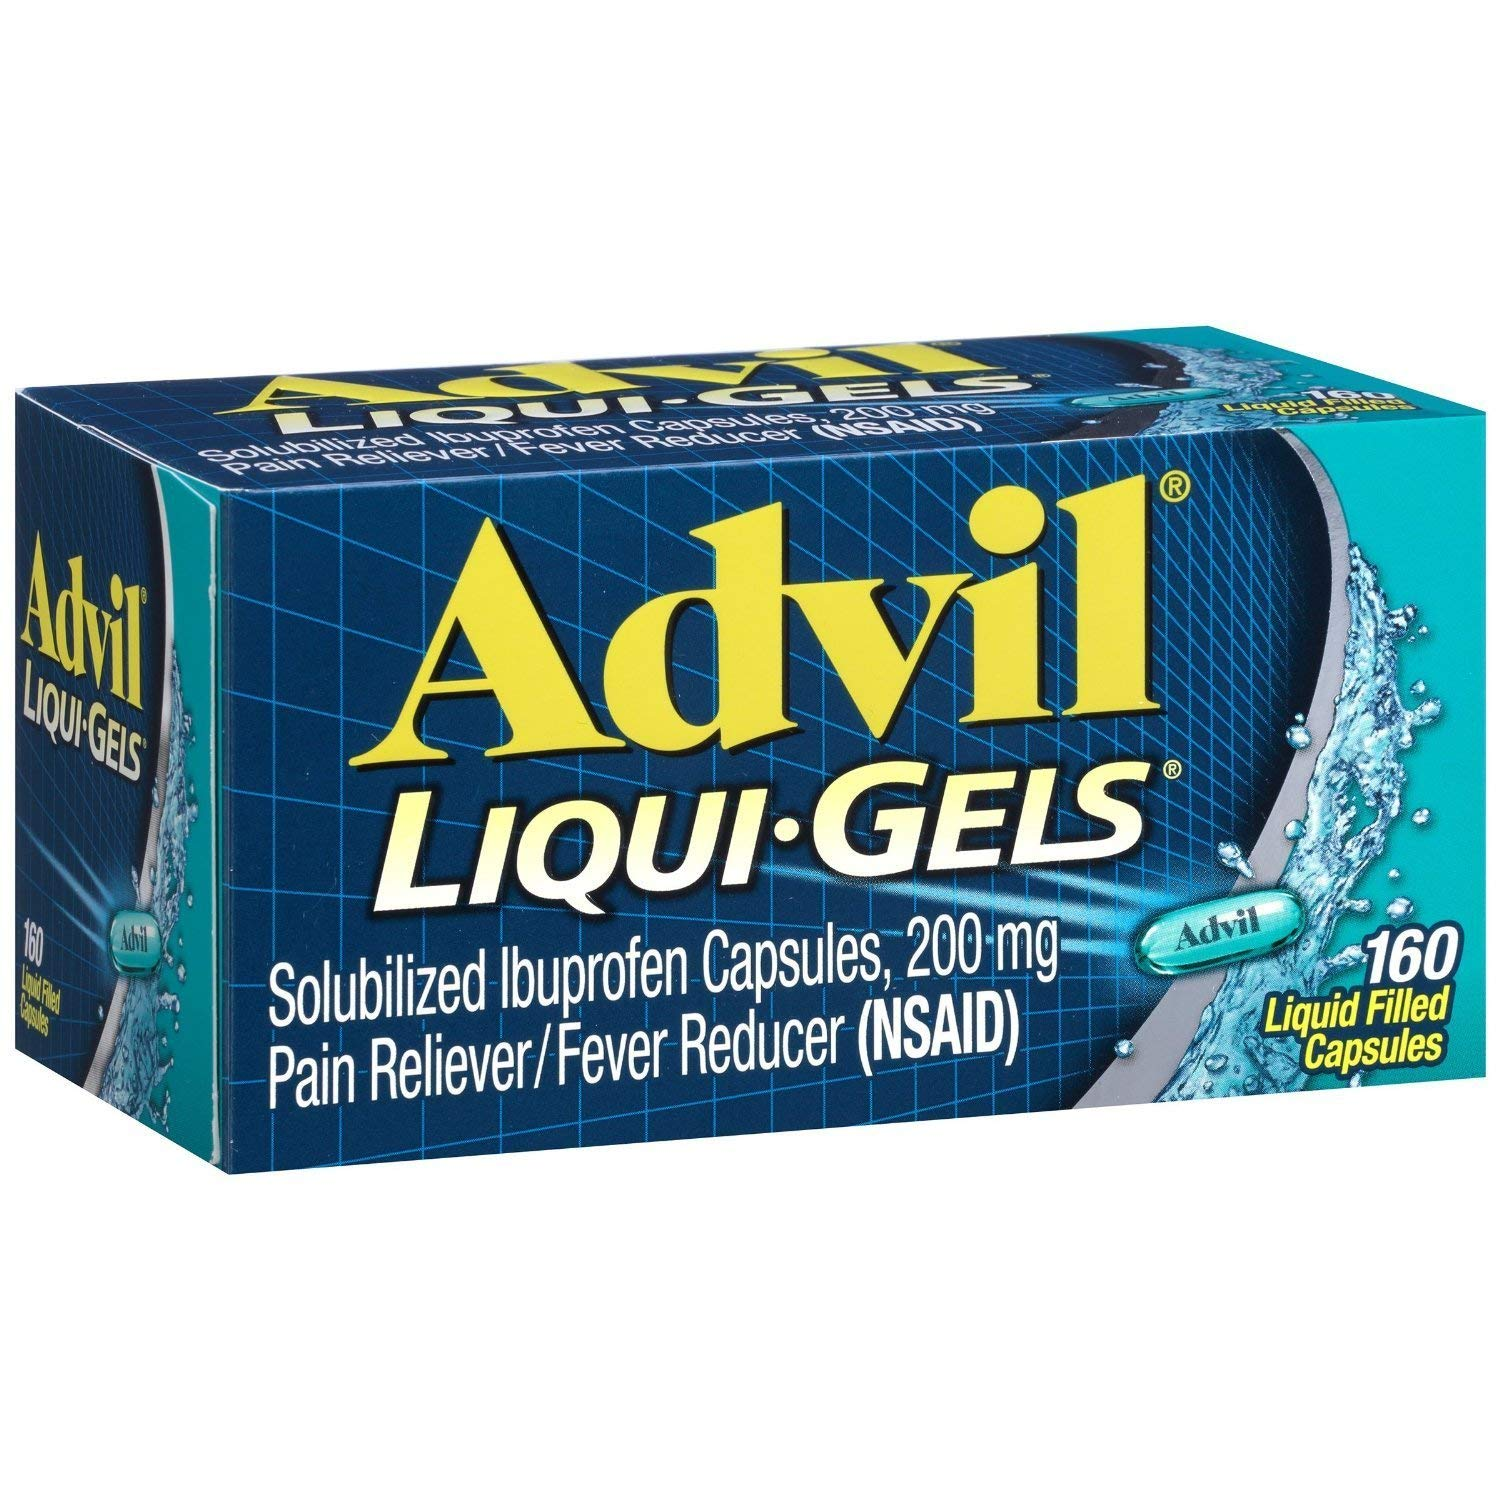 Advil Liqui-Gels Ibuprofen - 160 Liquid Filled Capsules